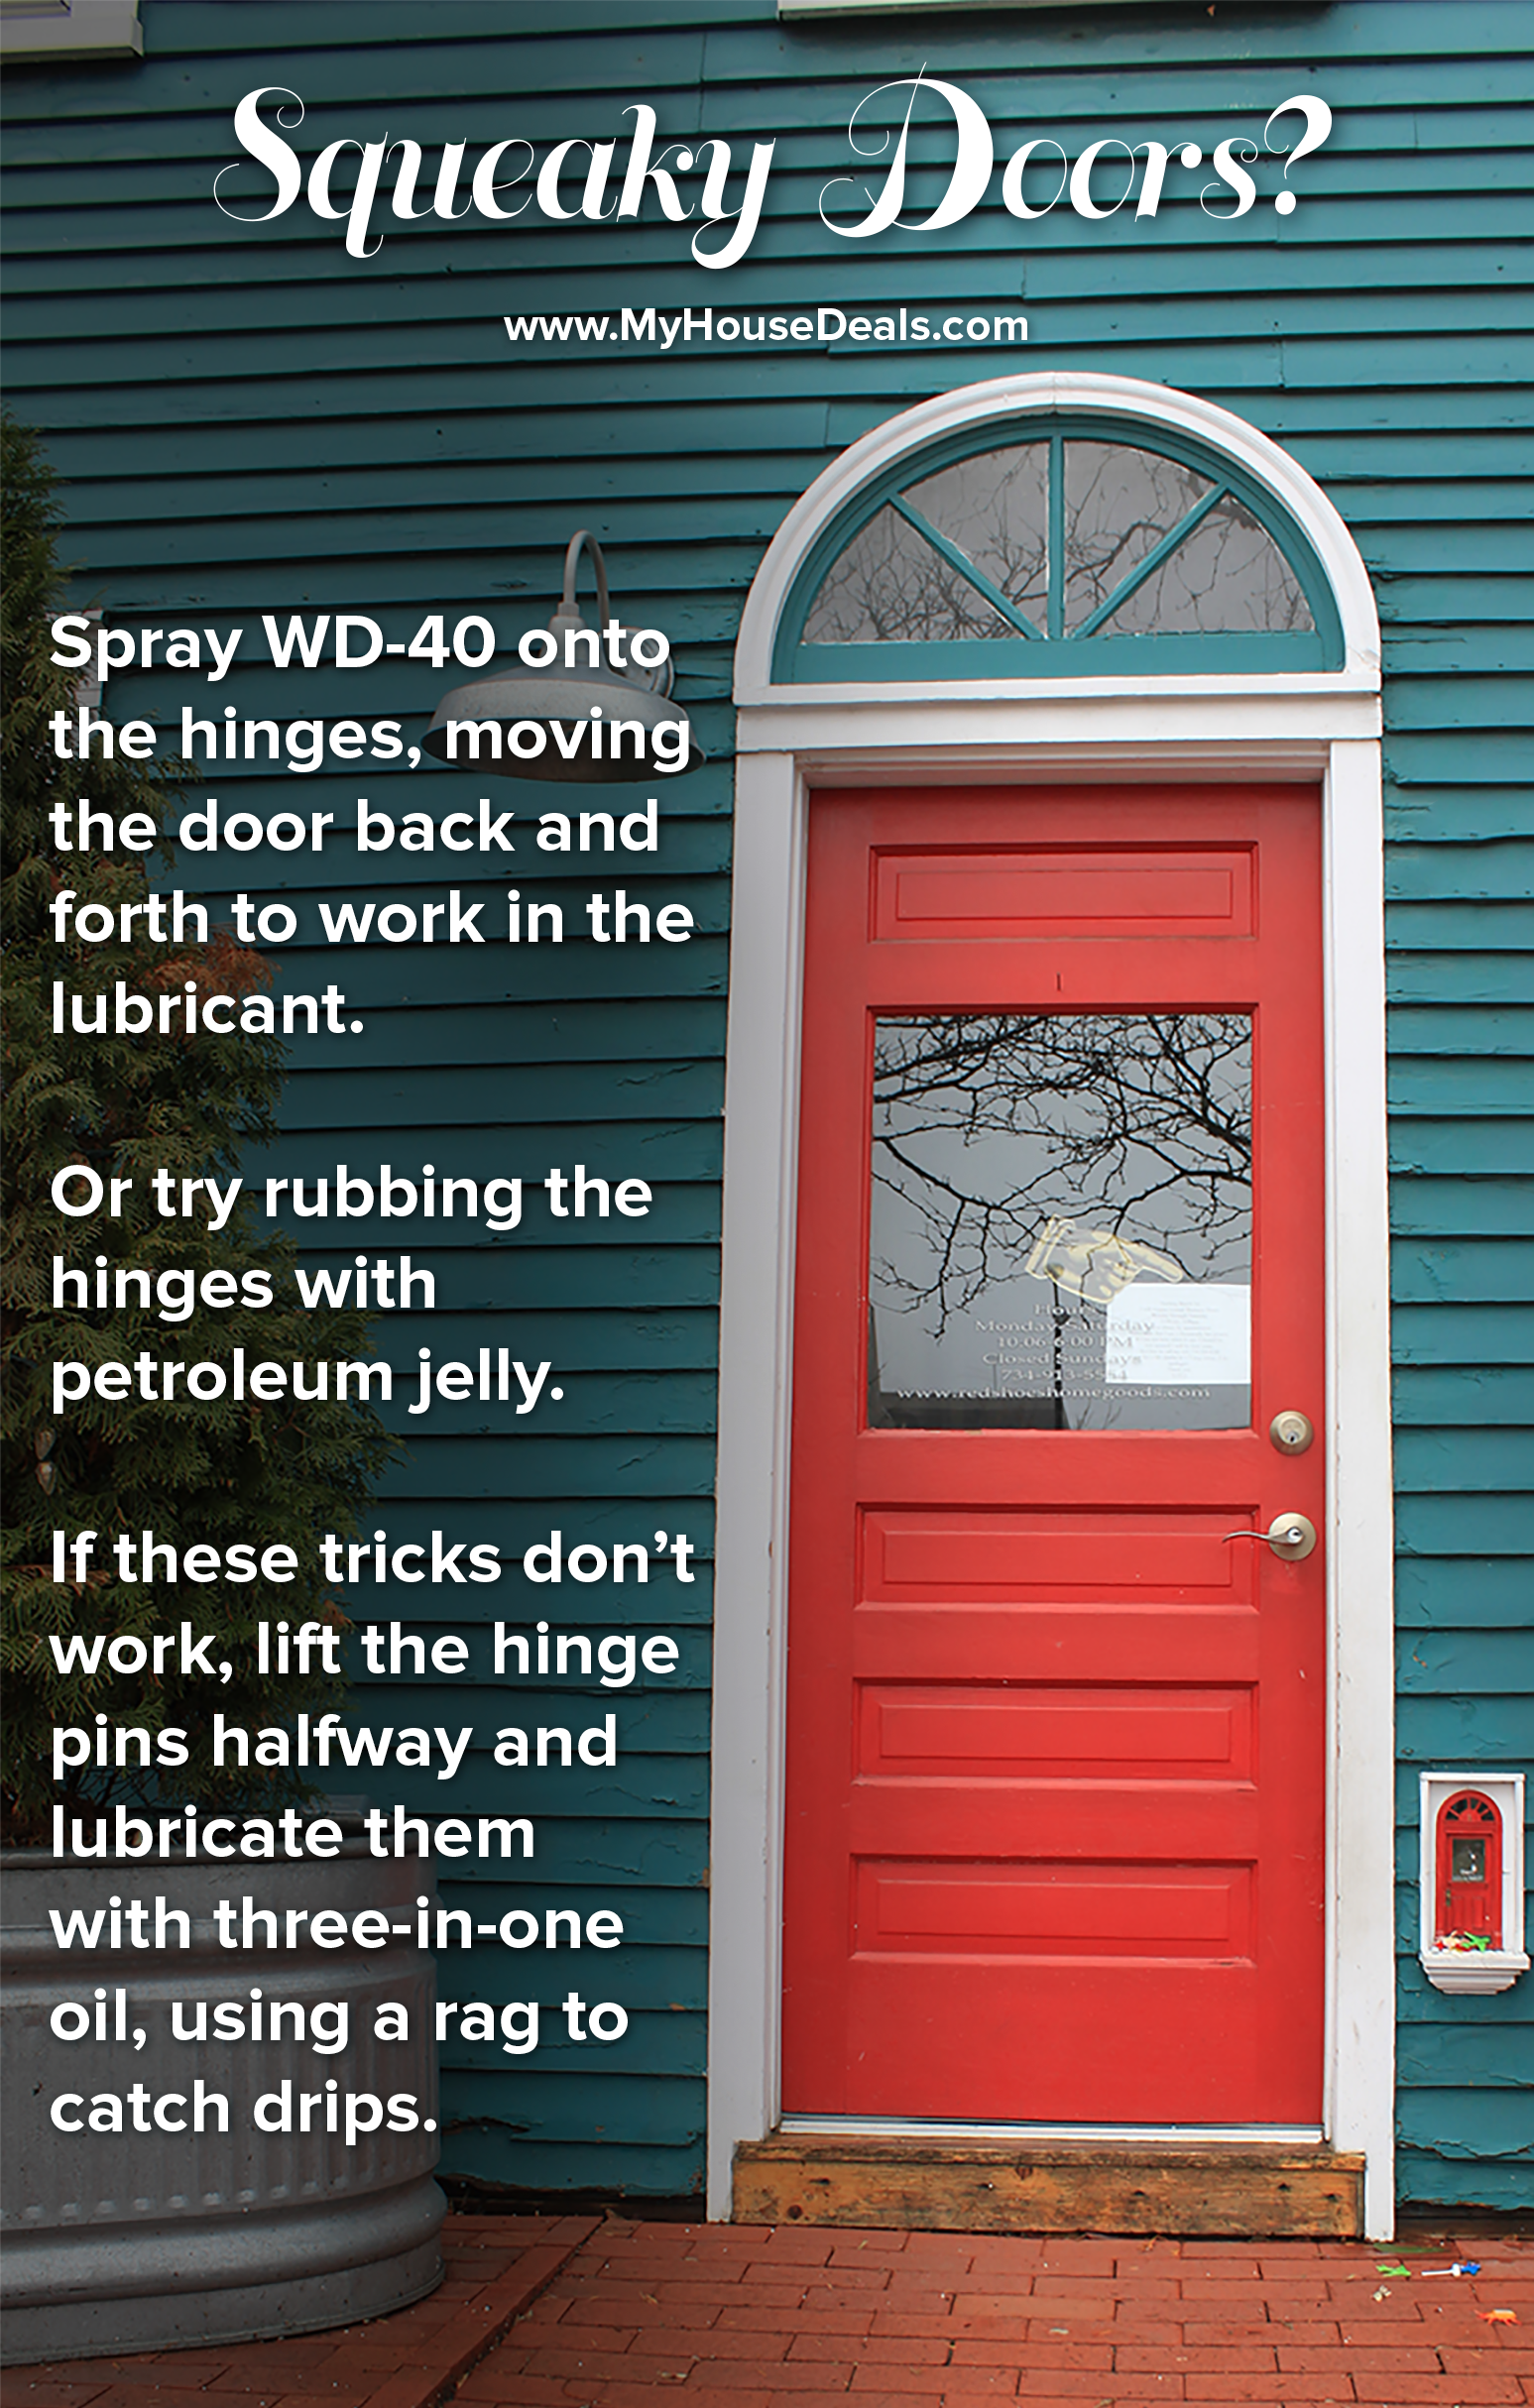 How To Fix Squeaky Door Hinges Spray A Little WD-40 Onto The Hinges & Door Hinge Creaks \u0026 You\\u0027re Starting To Think You Live In A ...